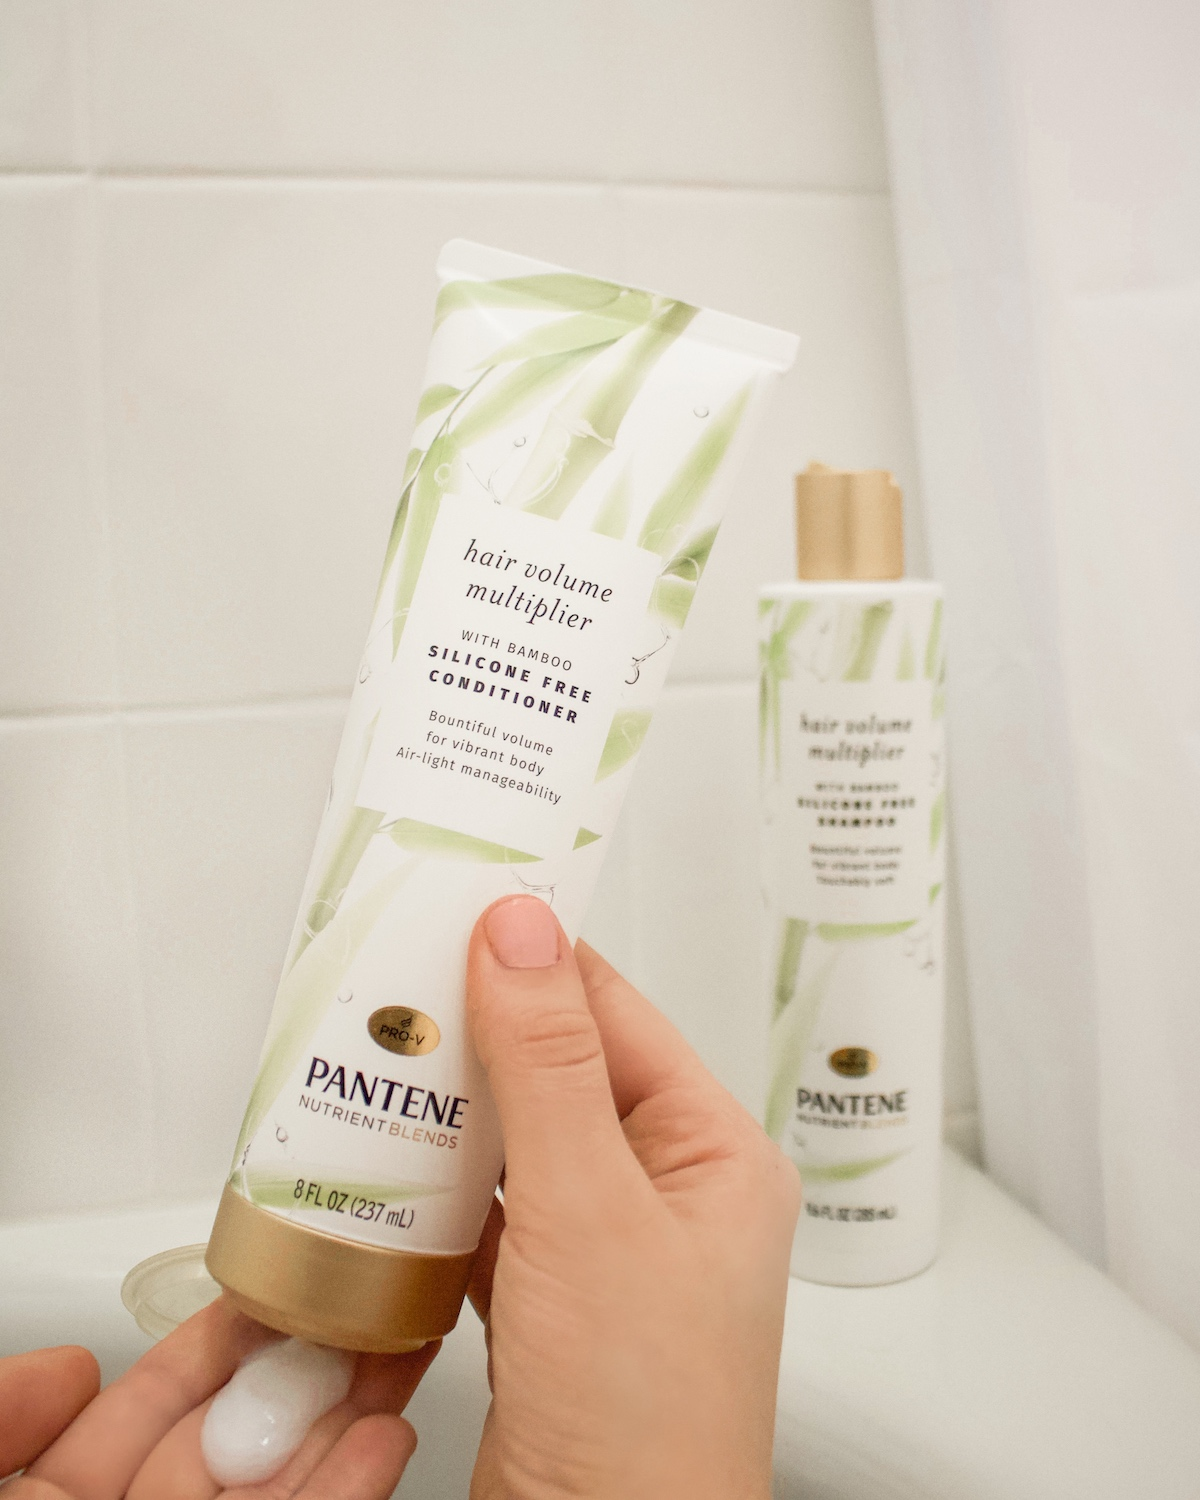 Pantene Nutrient Blends hair volume multiplier review